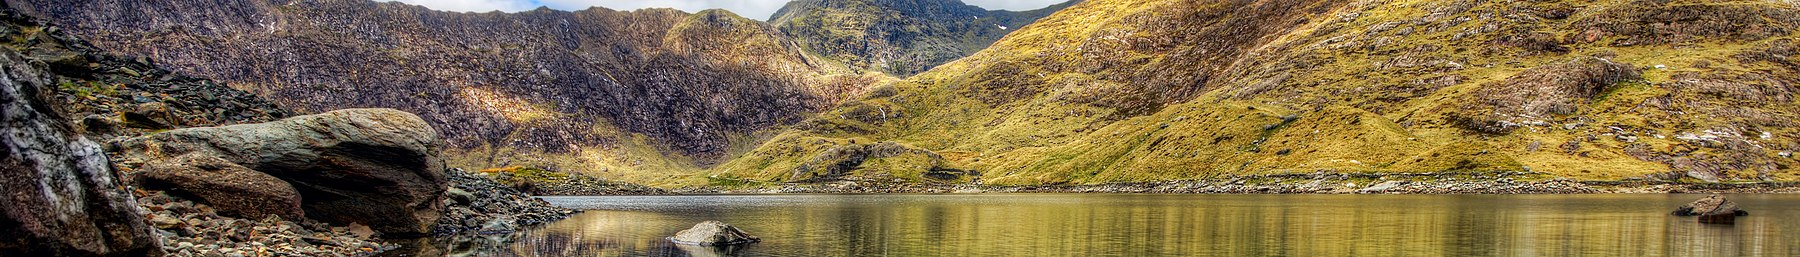 Llyn Llydaw in Snowdonia National Park